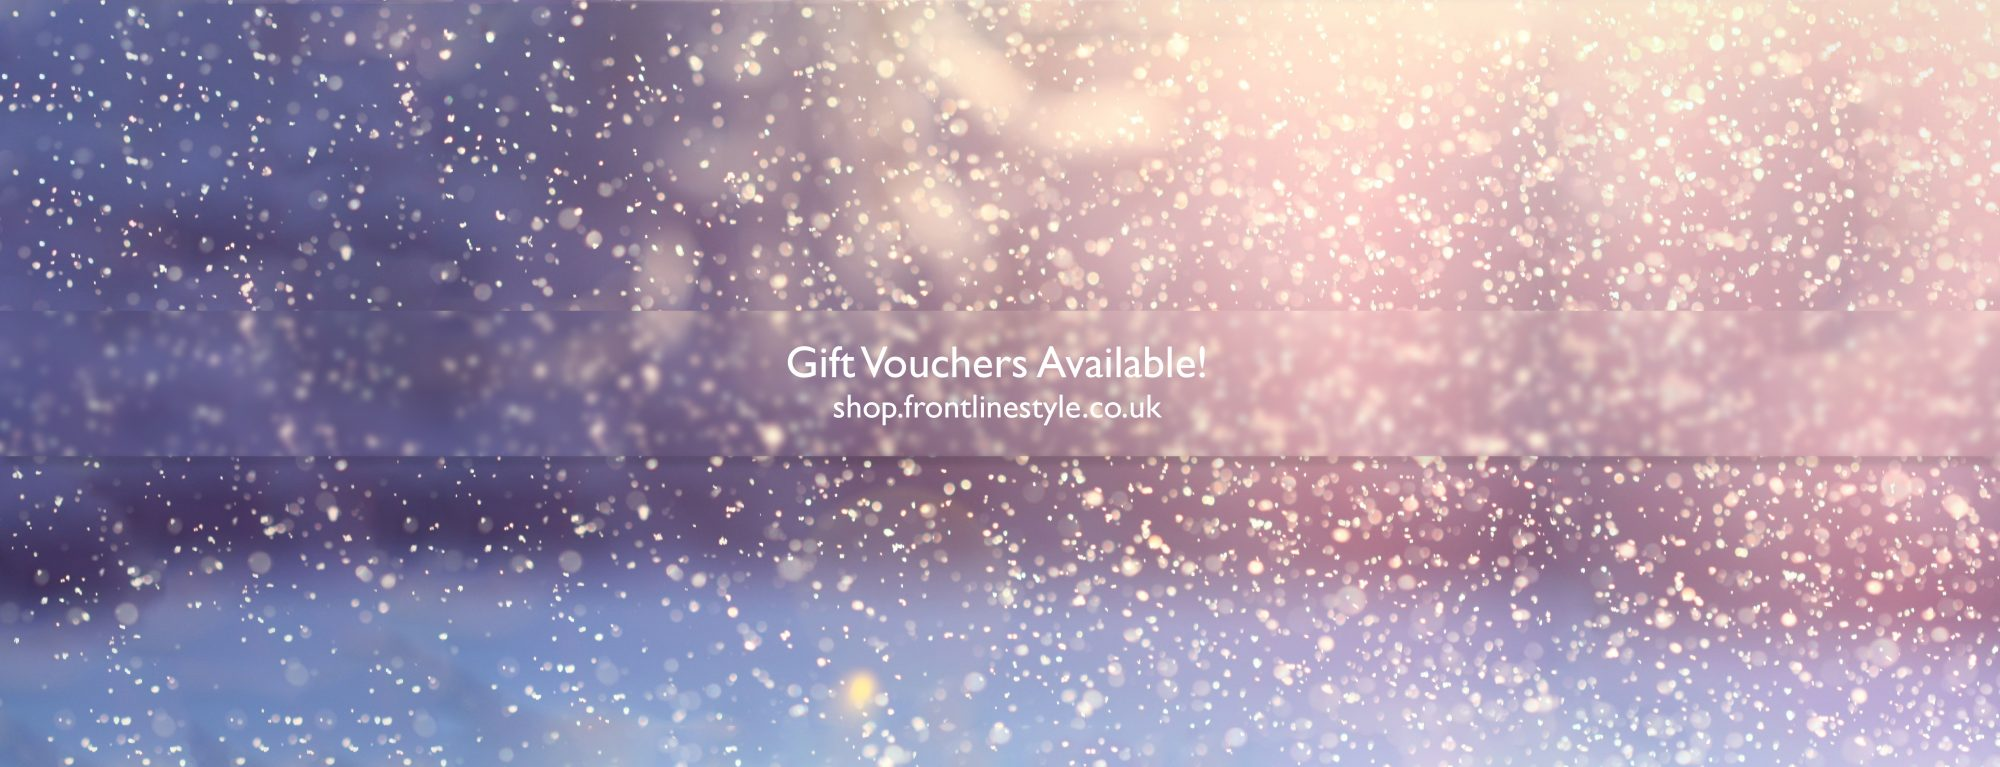 Gift Vouchers Available at Frontlinestyle